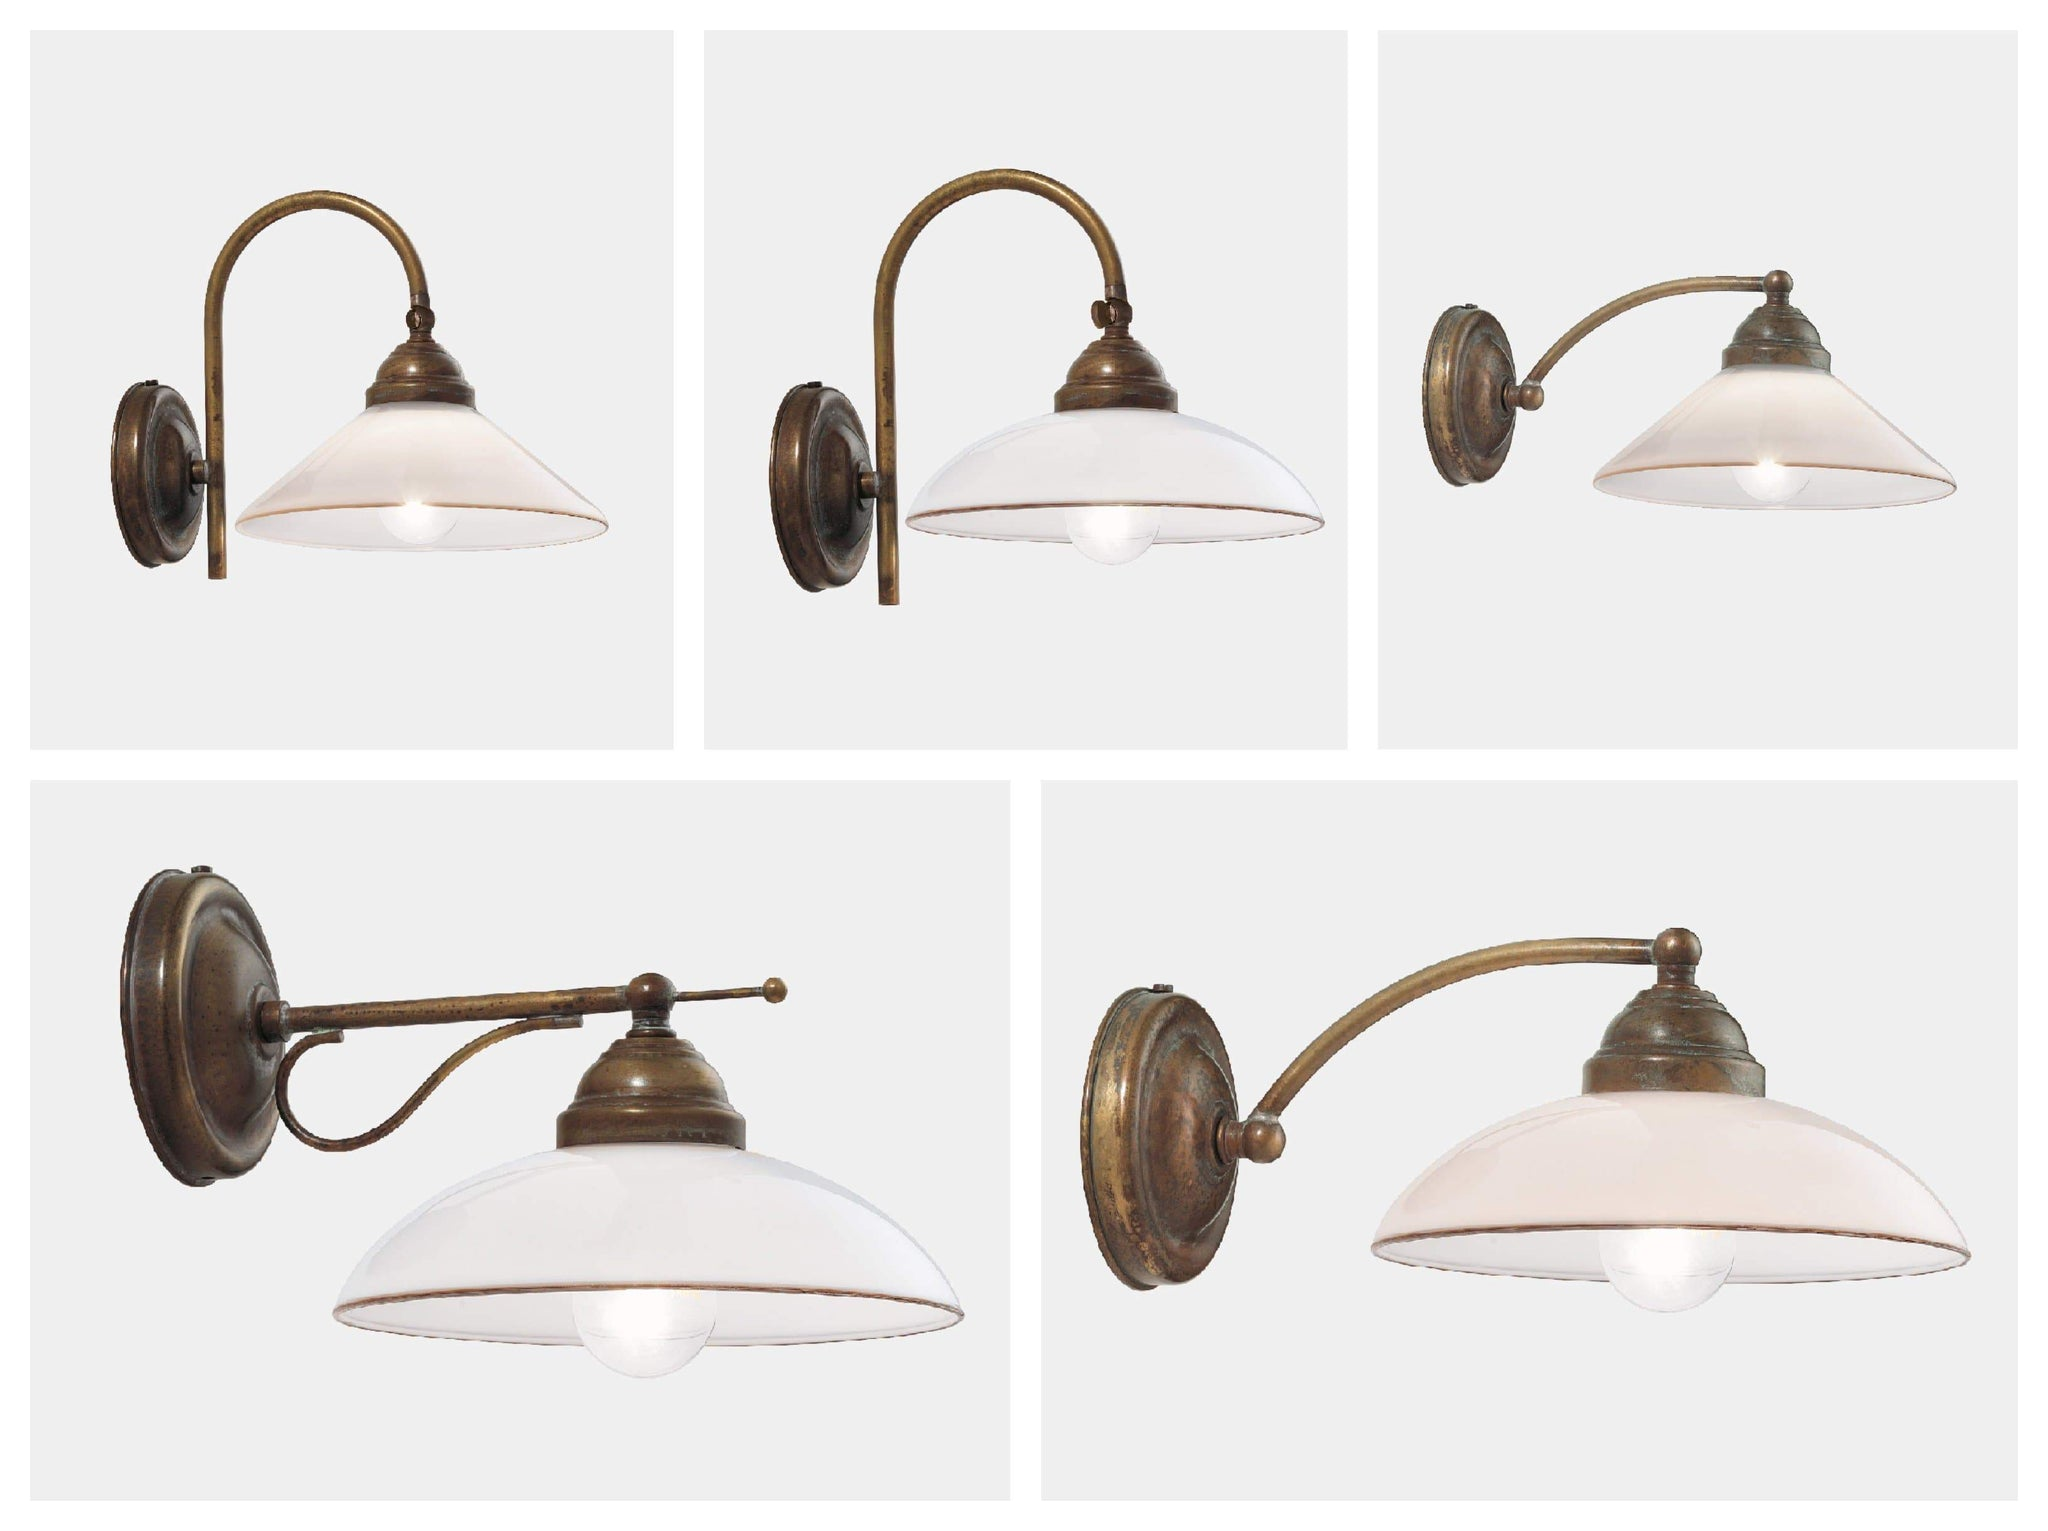 Interior Wall Light / Sconce Country Wall Light Contina Wall Light lighting shops lighting stores LED lights  lighting designer